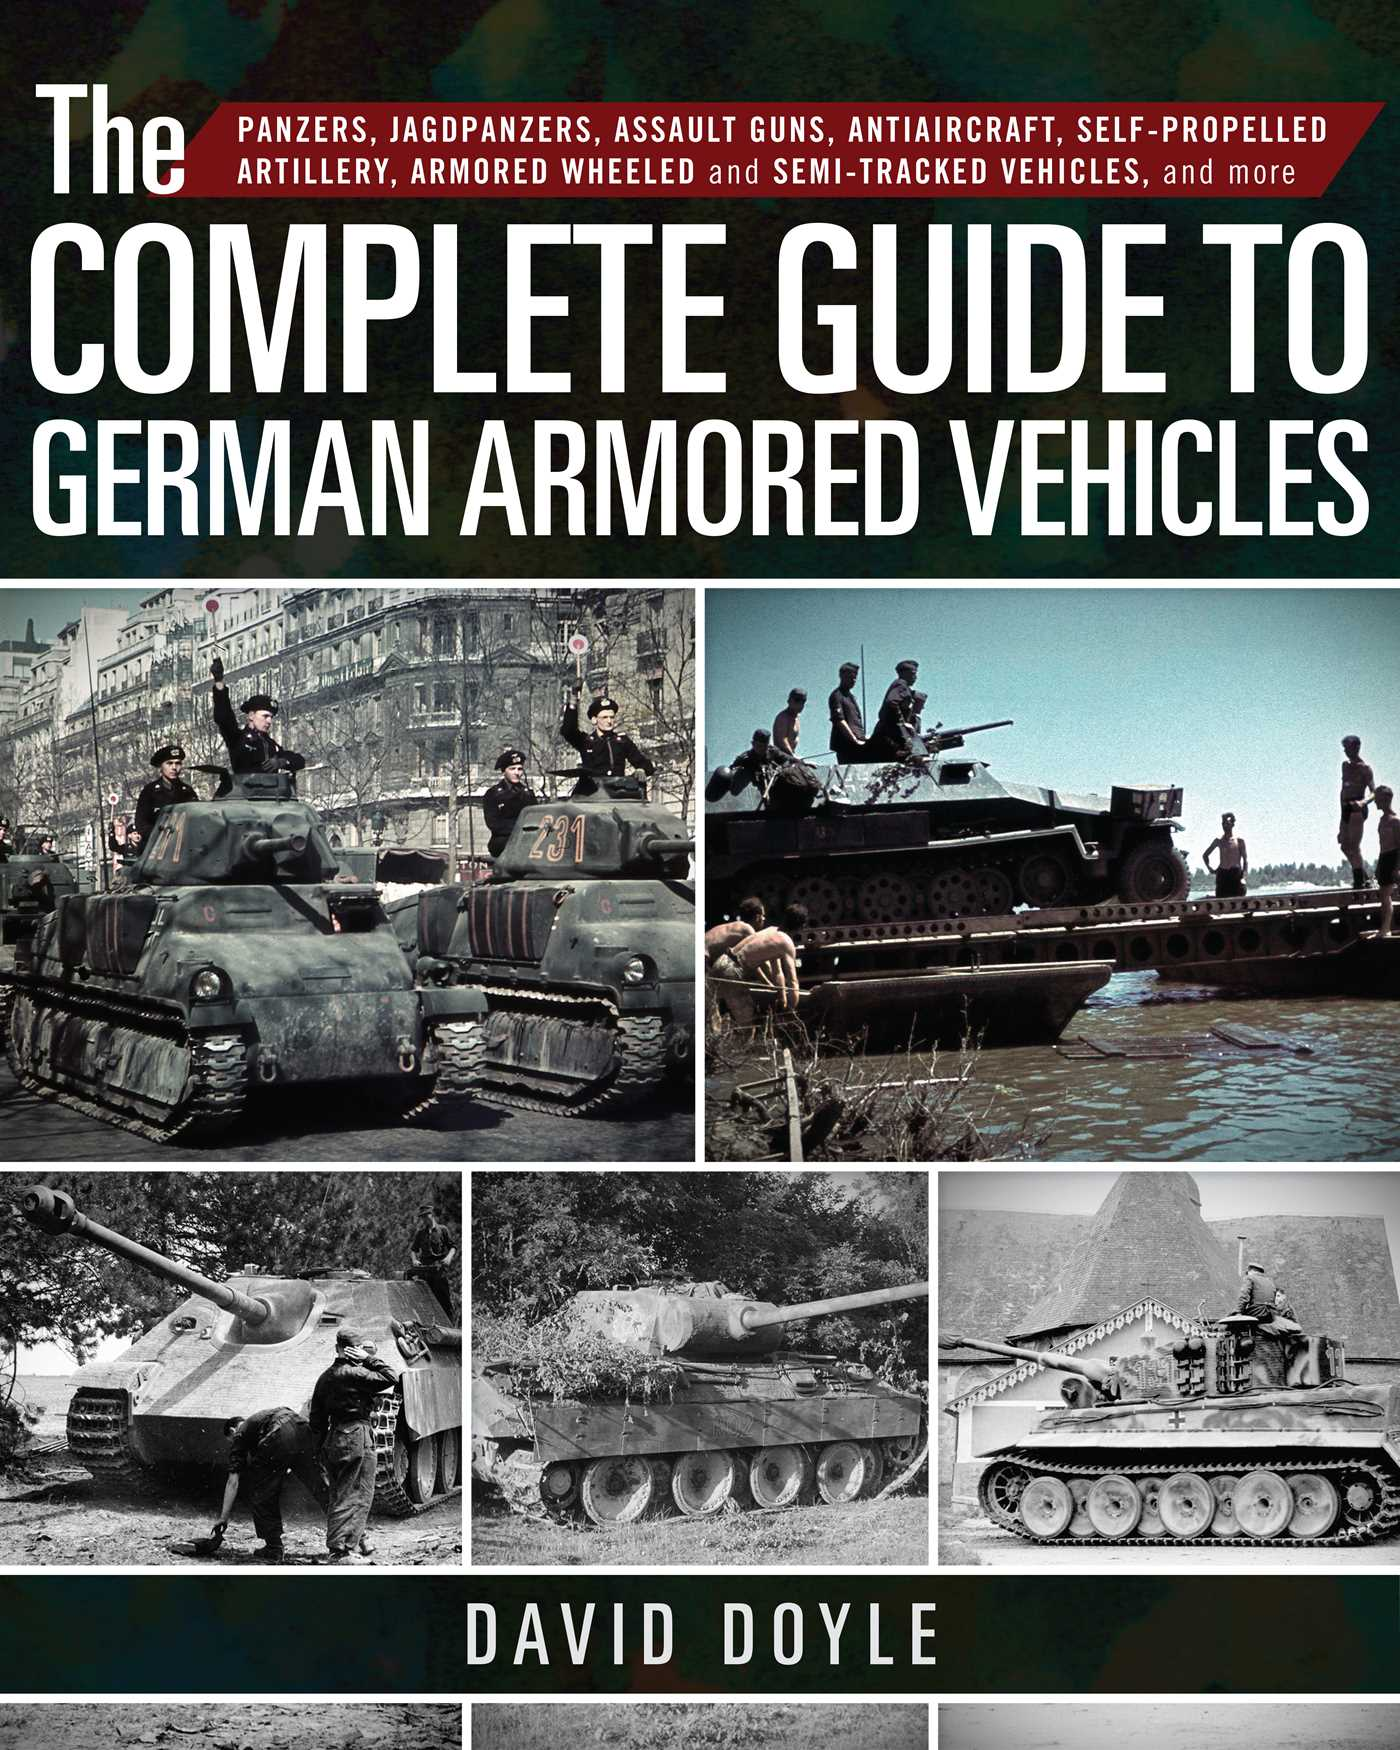 The complete guide to german armored vehicles 9781510716582 hr